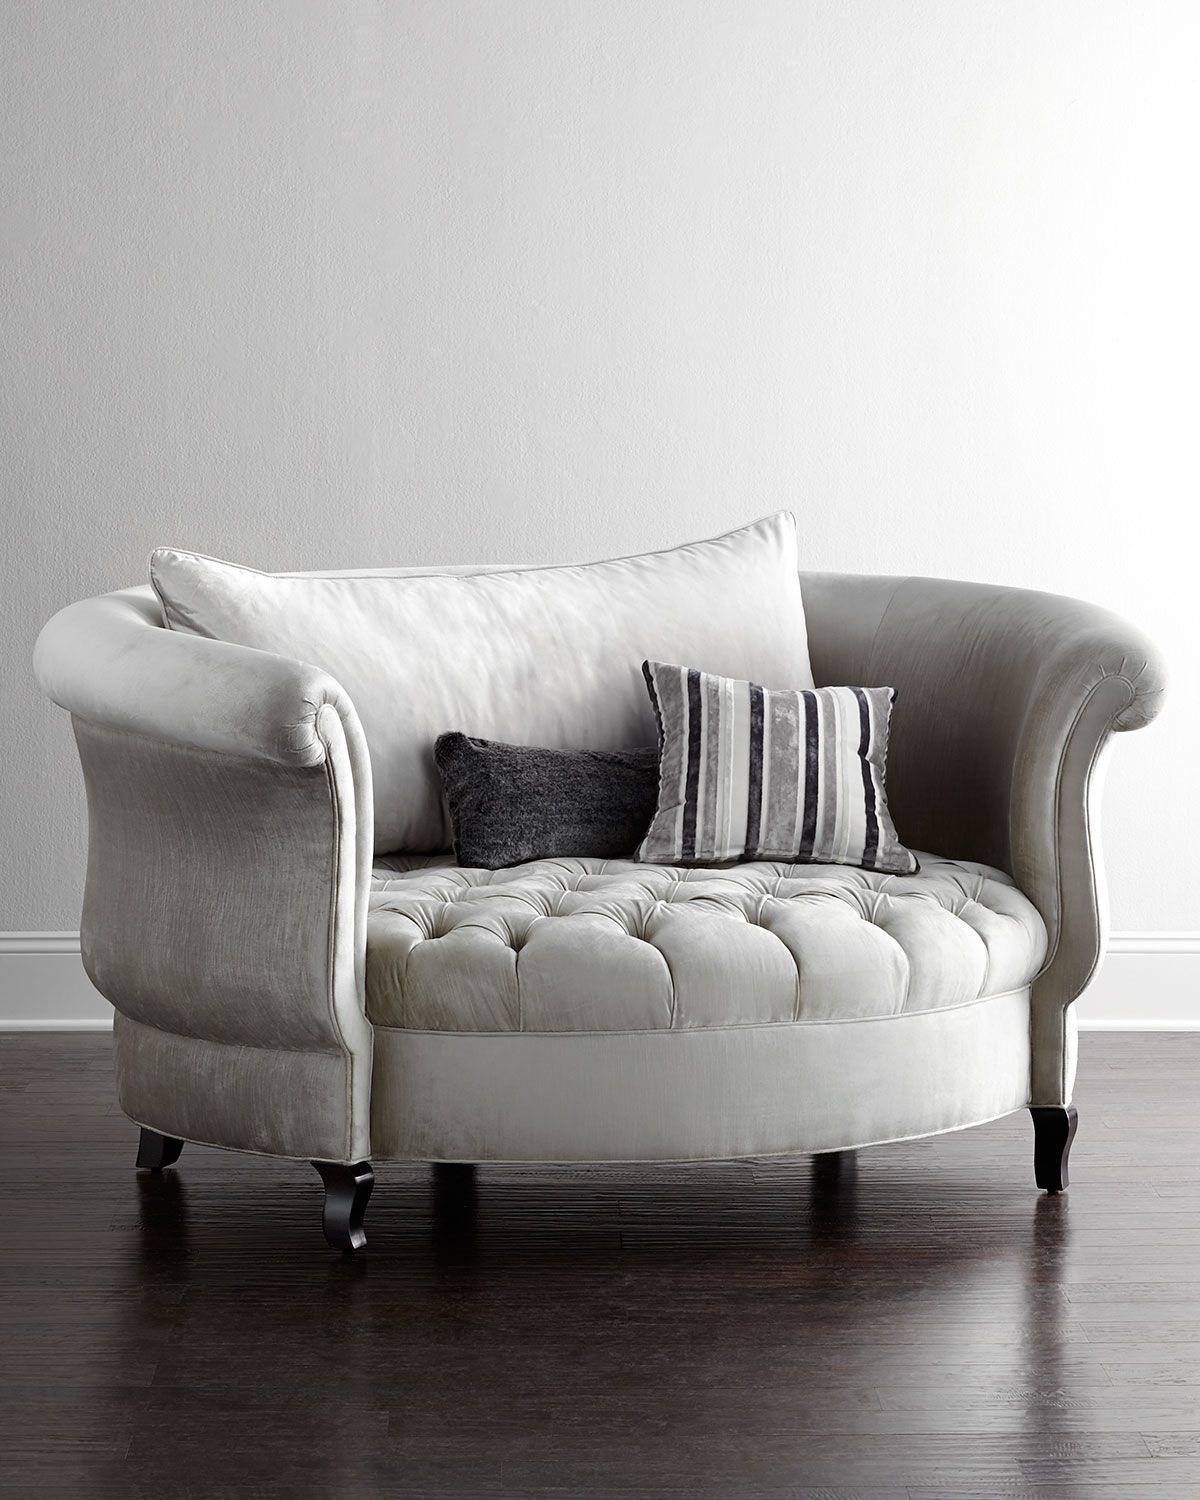 harlow silver cuddle chair cuddle chairto nooksgood bookscomfy chairhome ideasmaster bedrooms